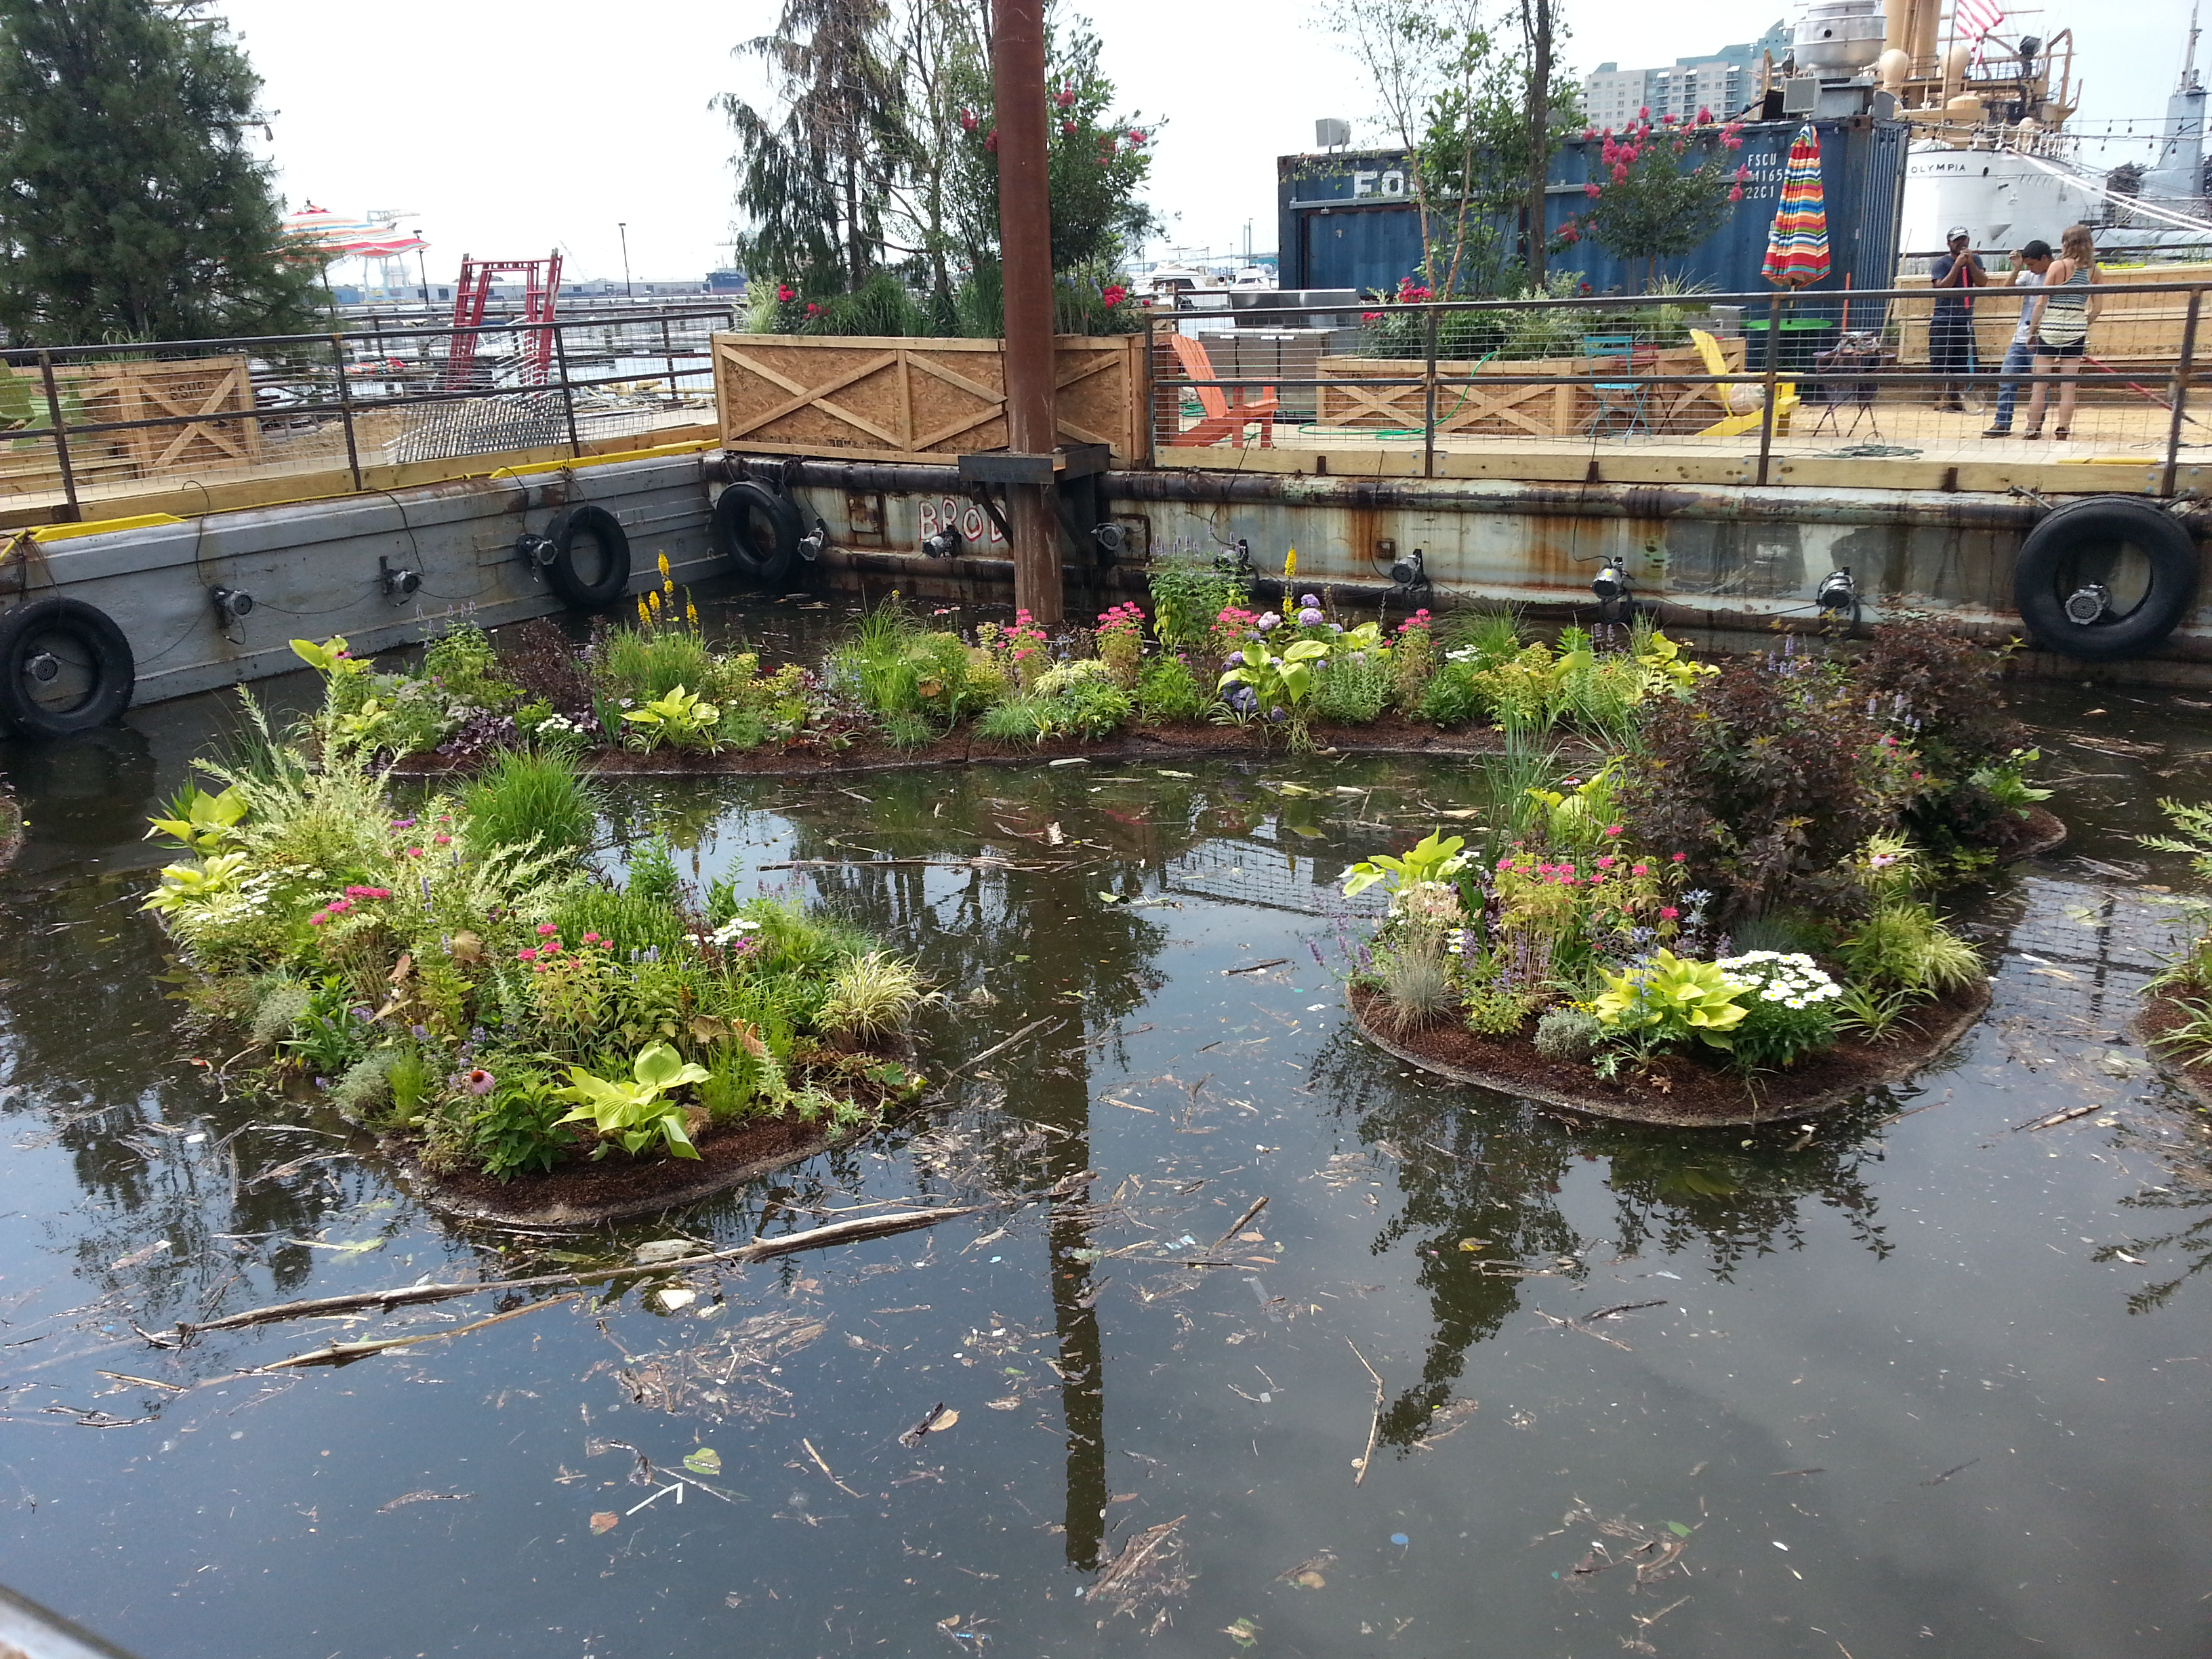 The floating gardens at Spruce Street Harbor Park